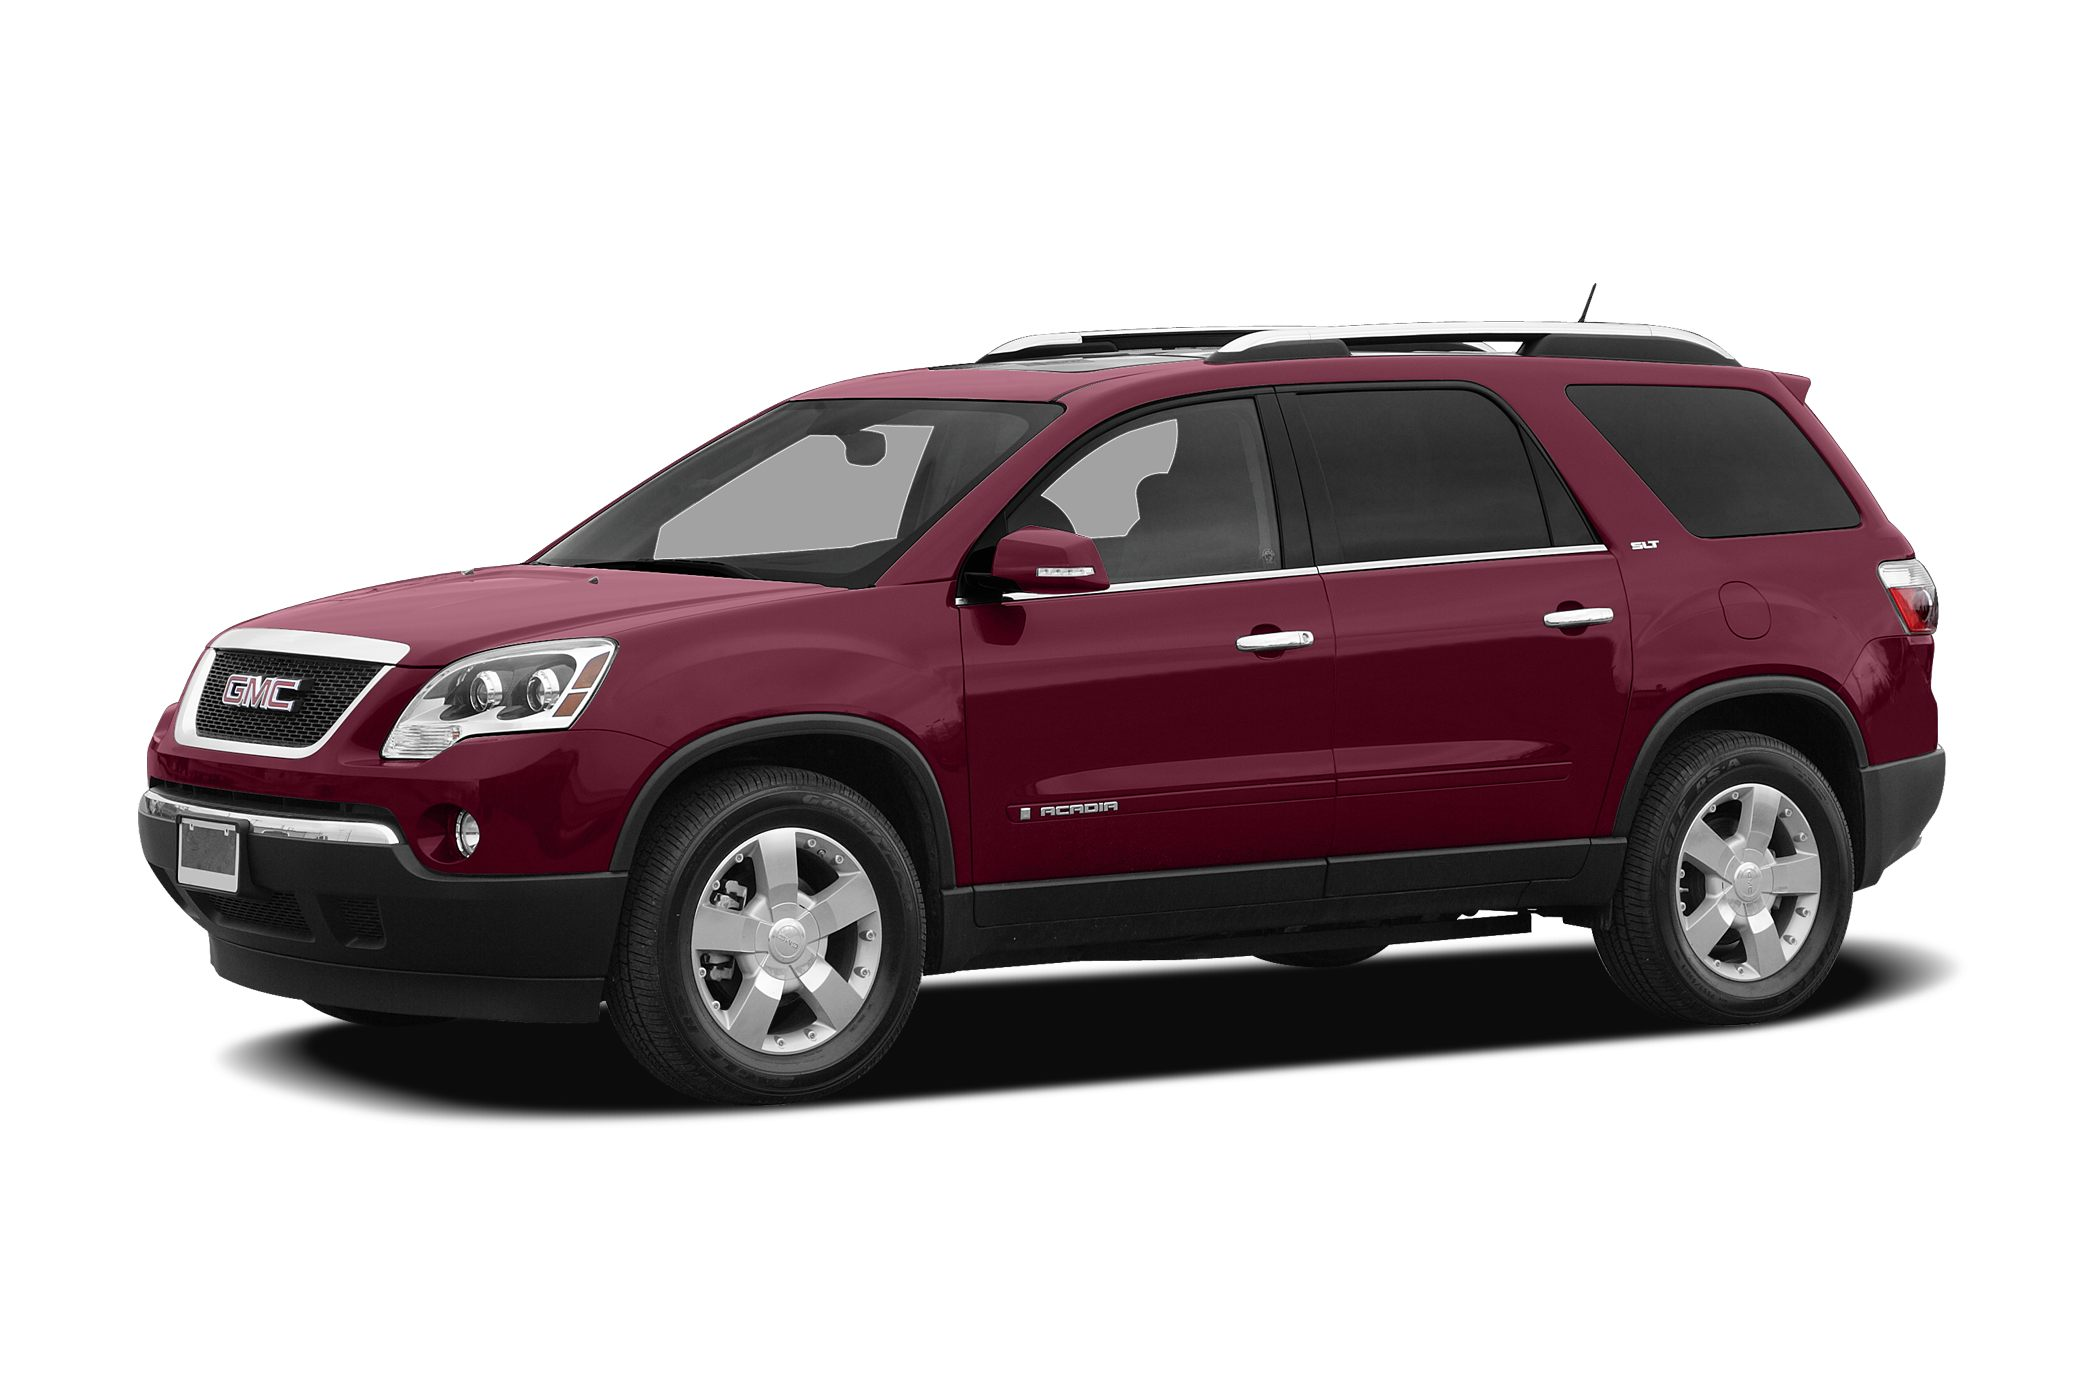 2008 GMC Acadia SLT-2 Miles 65538Color Red Stock 19124 VIN 1GKEV23788J292762